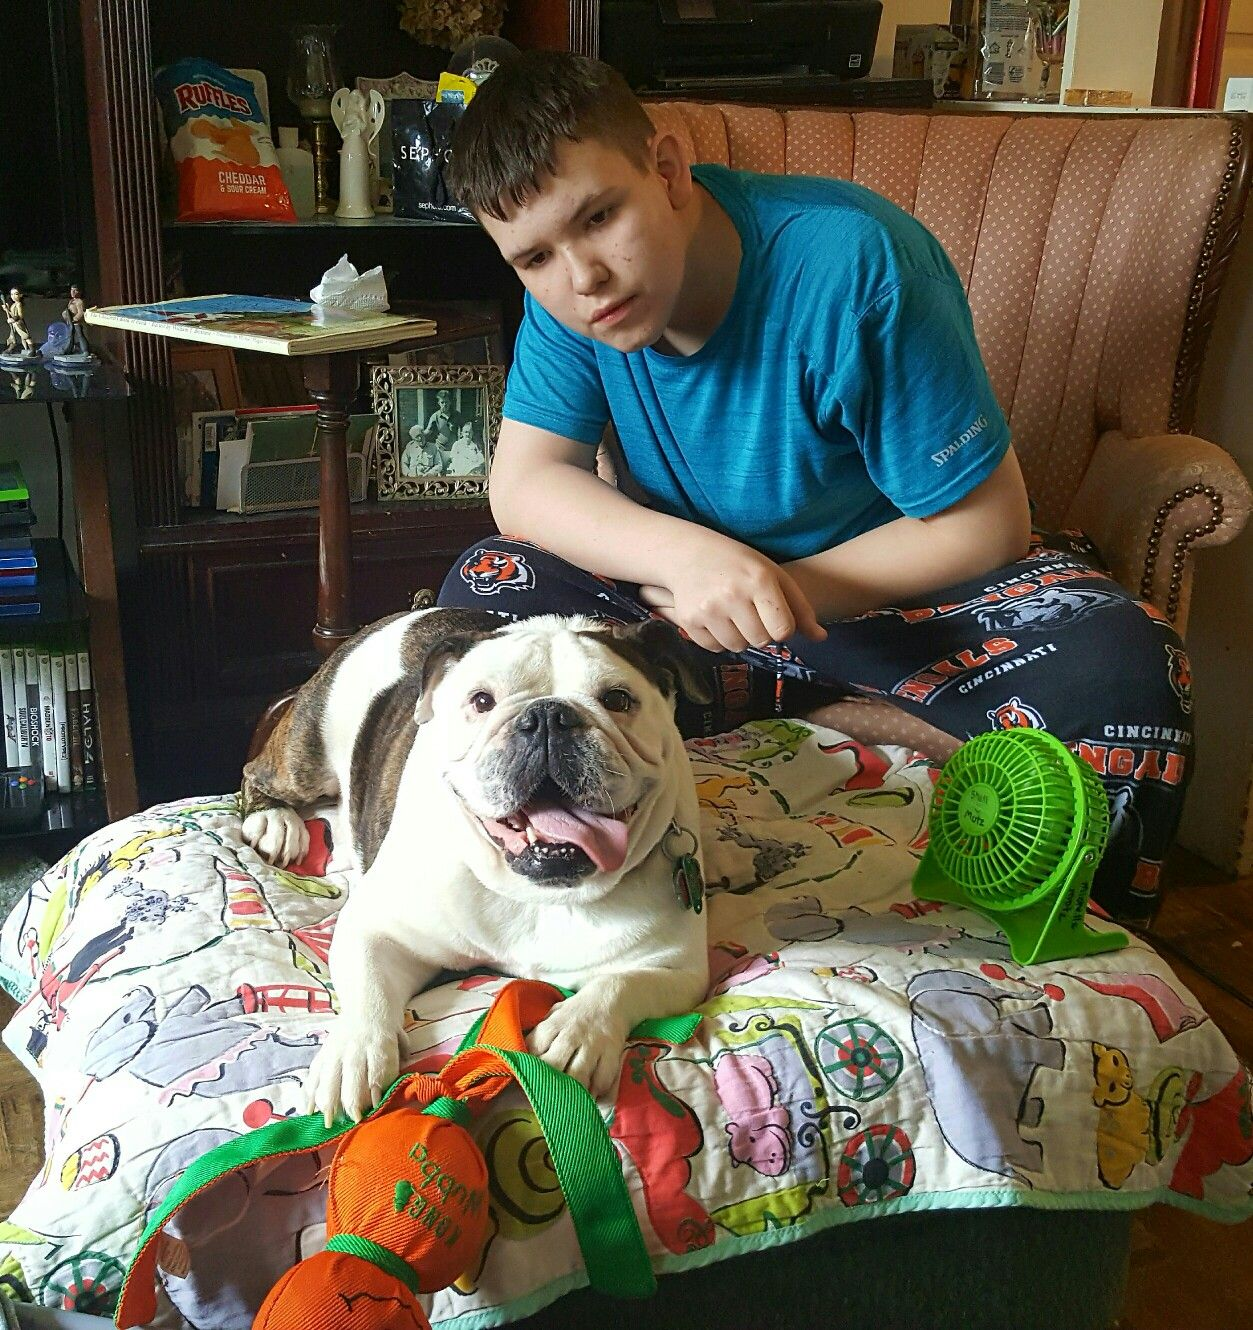 English Bulldog Health Issues, Grooming, and Living Conditions